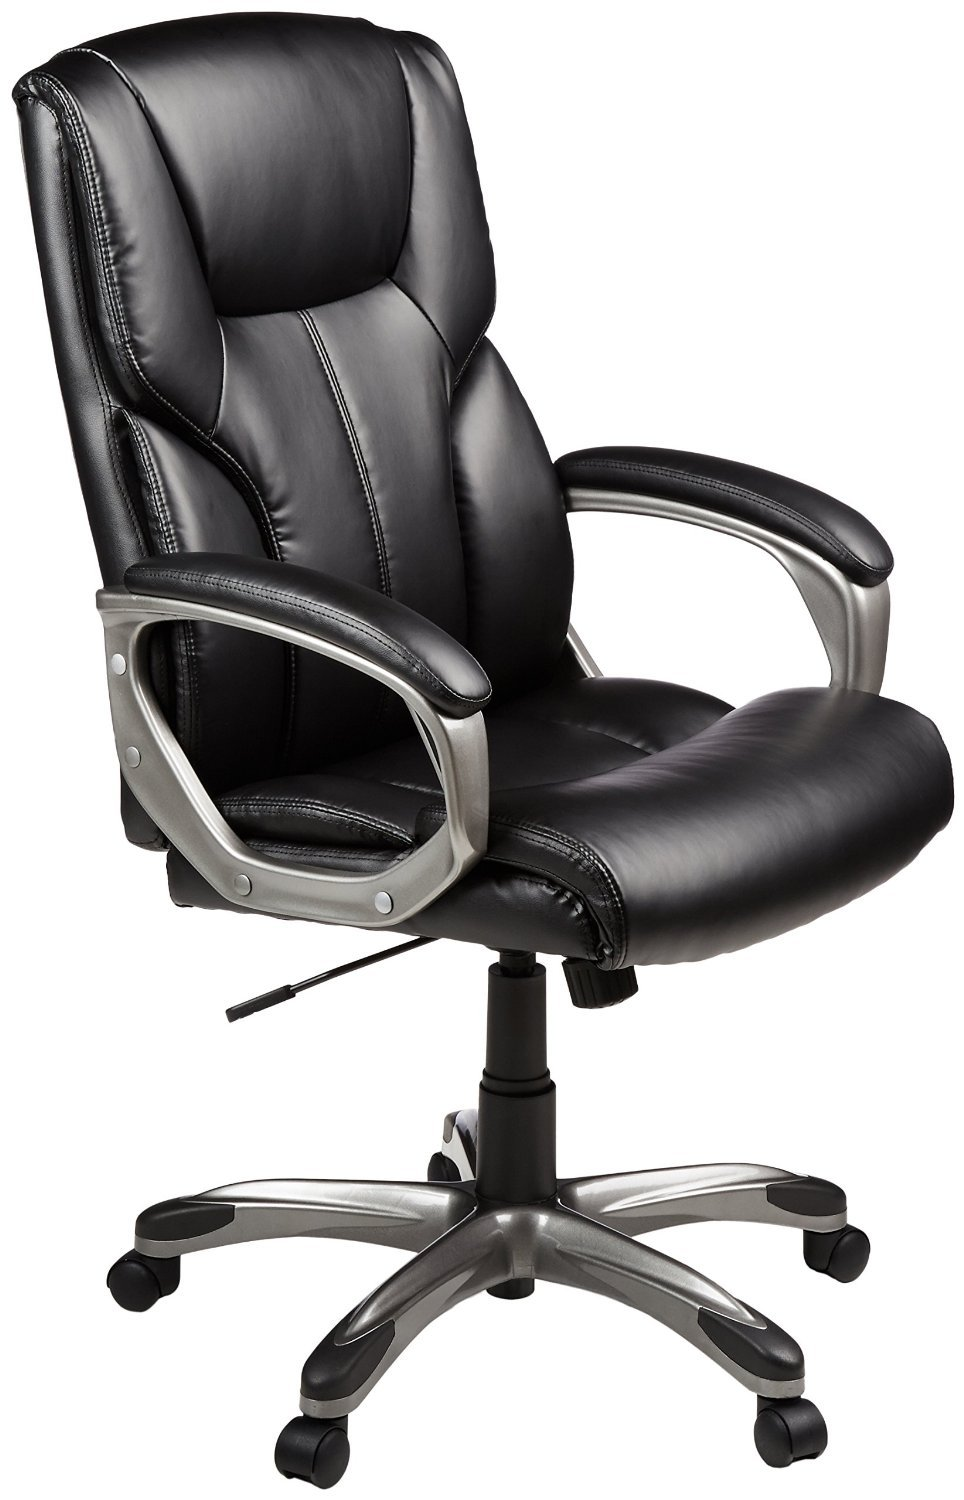 cheap office chairs amazon. AmazonBasics High-Back Executive Chair - Black Cheap Office Chairs Amazon .